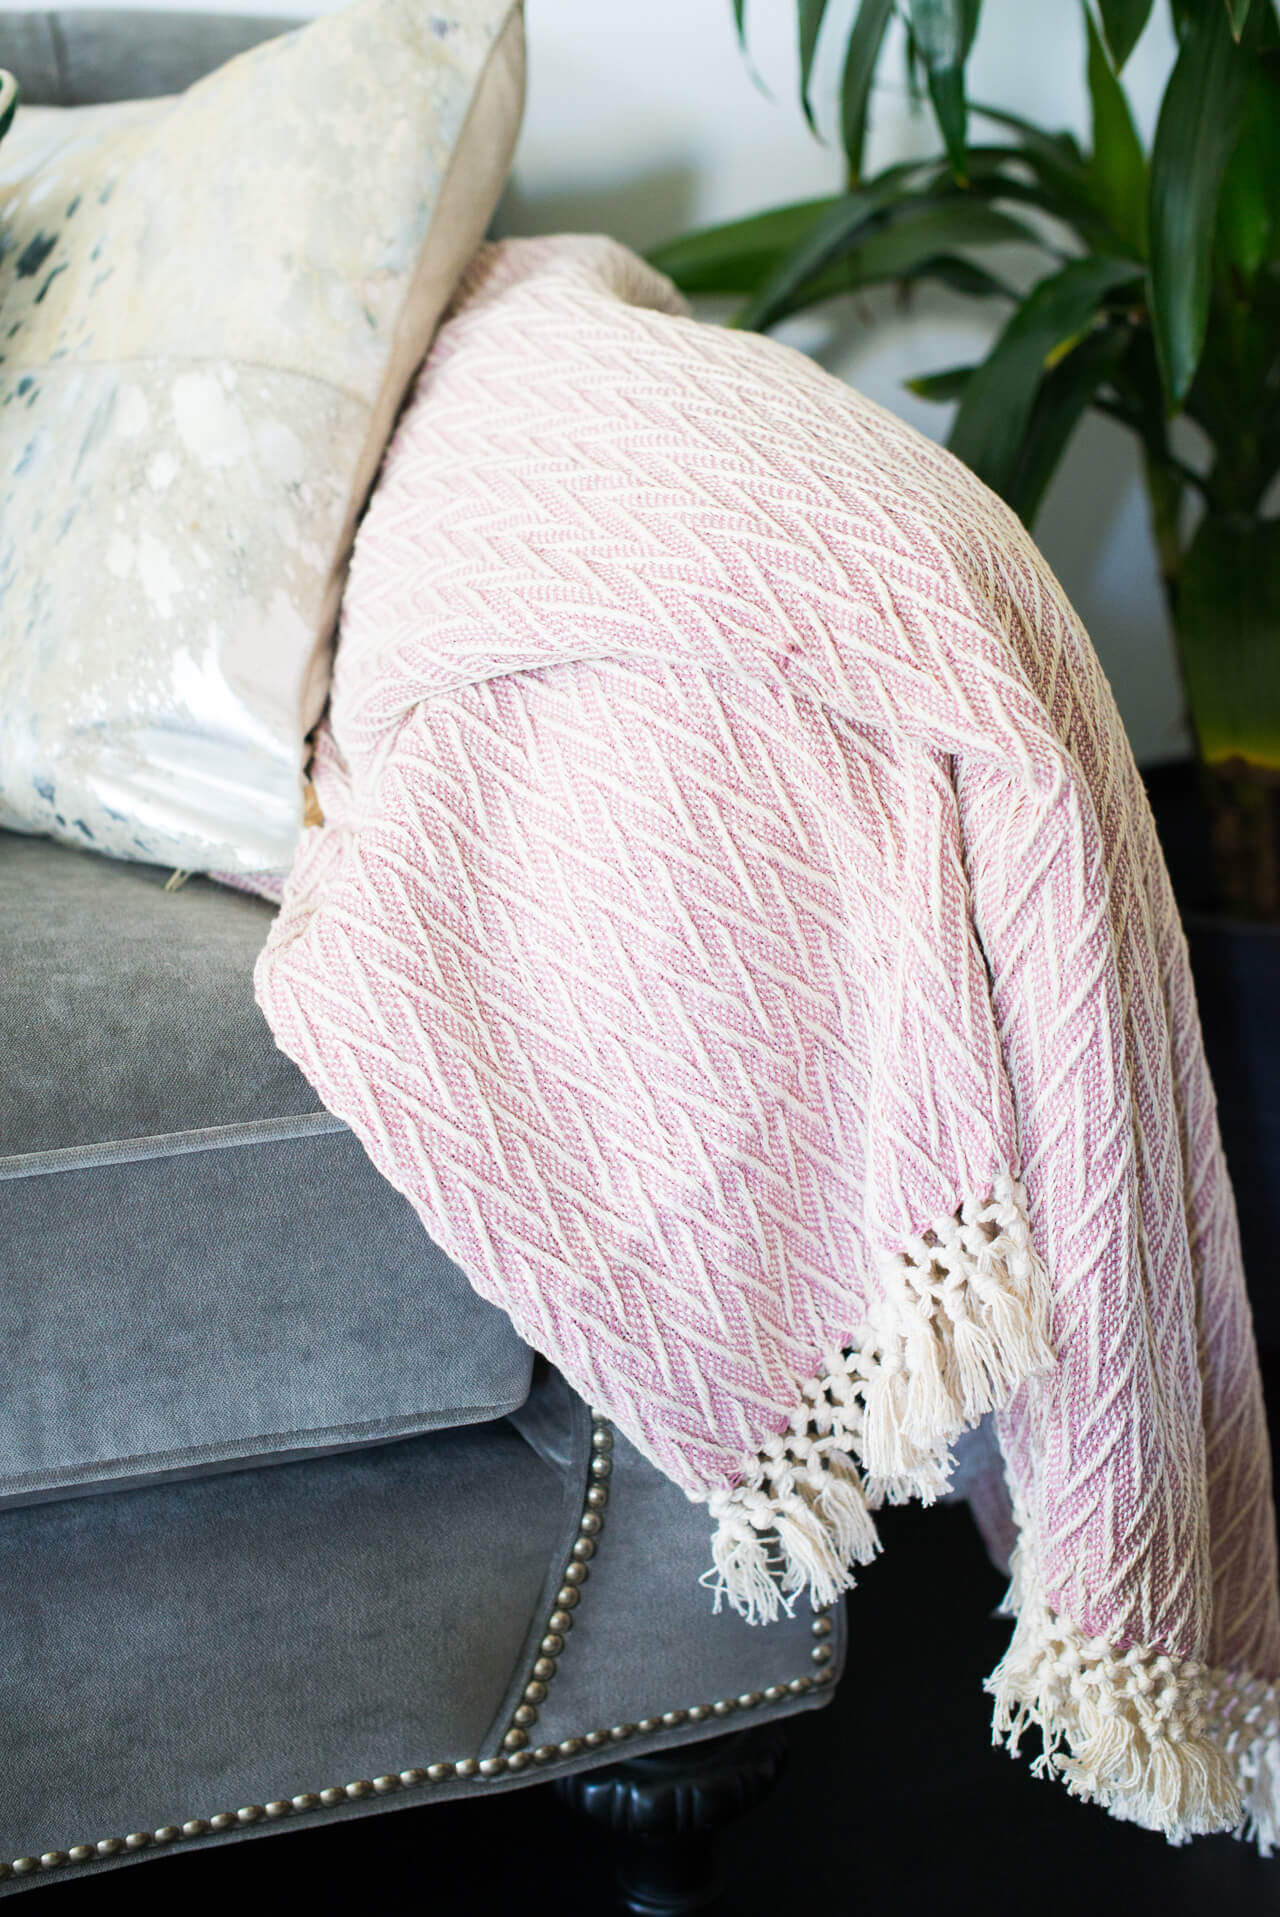 lavender knit throw on gray couch